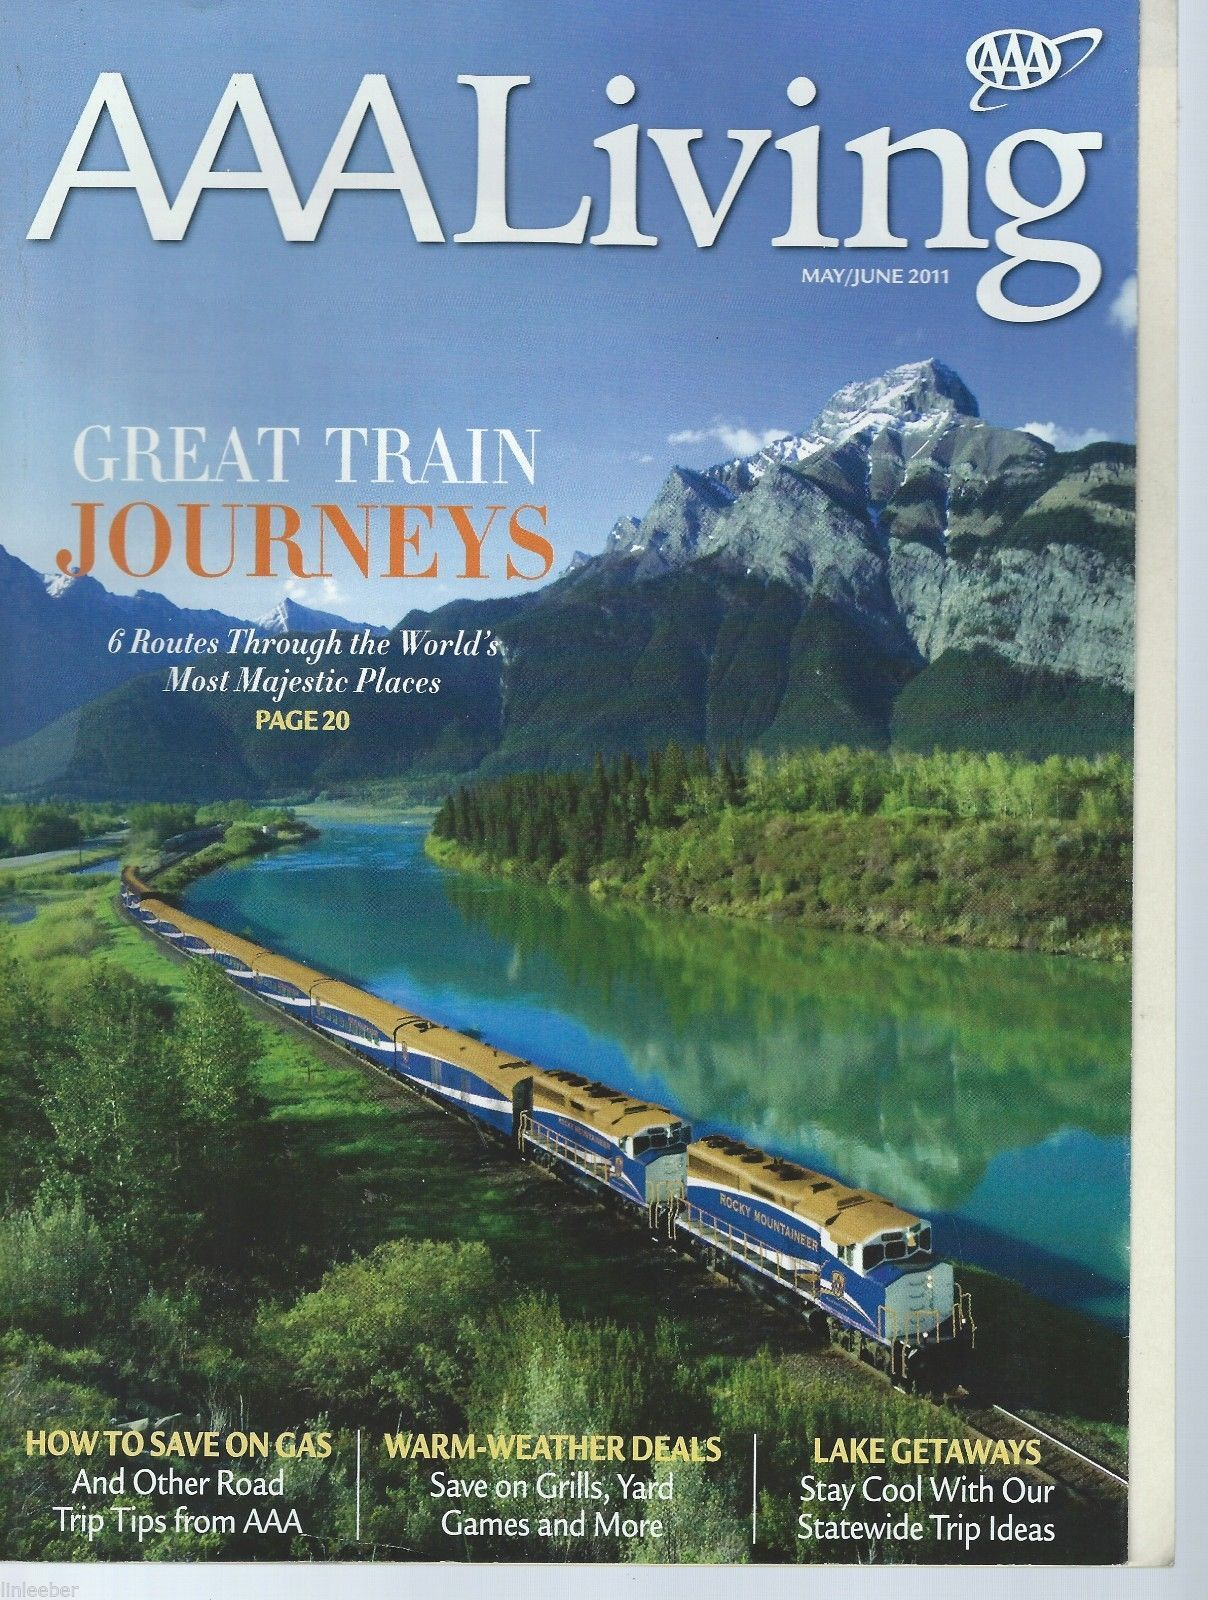 AAA Living Magazine-May/June 2011;Great Train Journeys;6 Routes Through World's